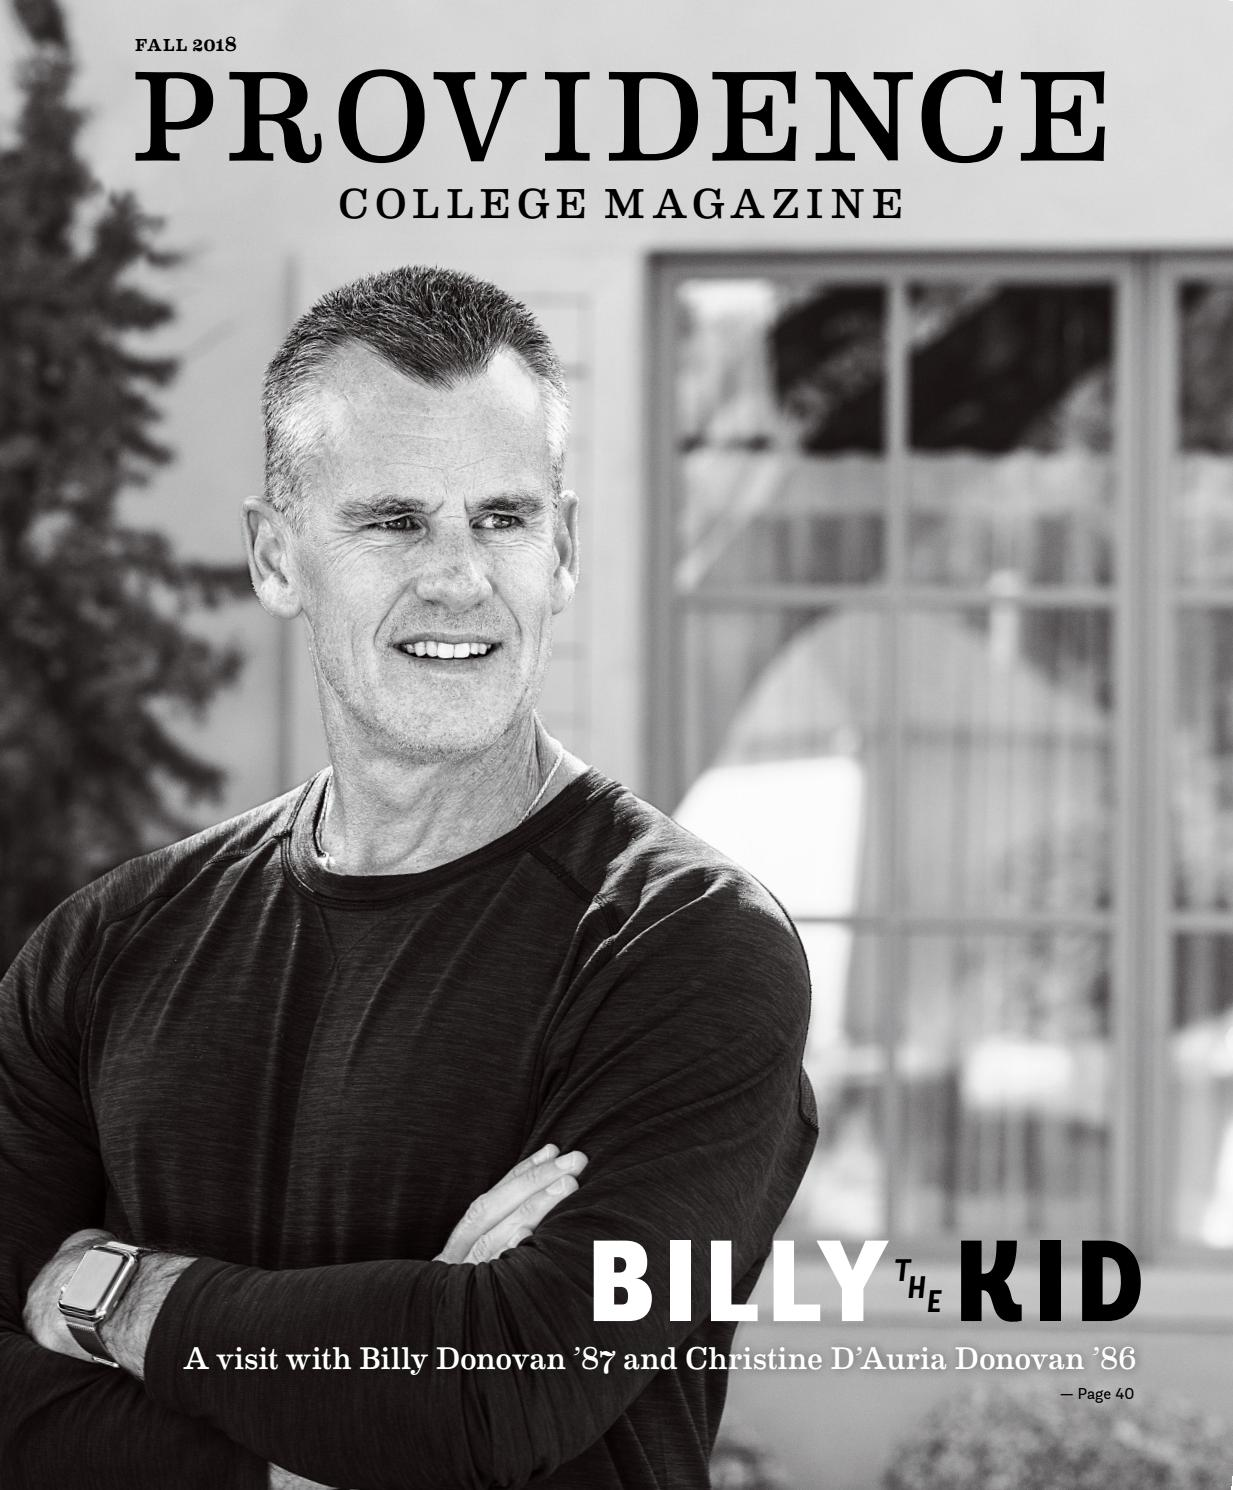 Qvc Masson Providence College Magazine By Providence College Issuu